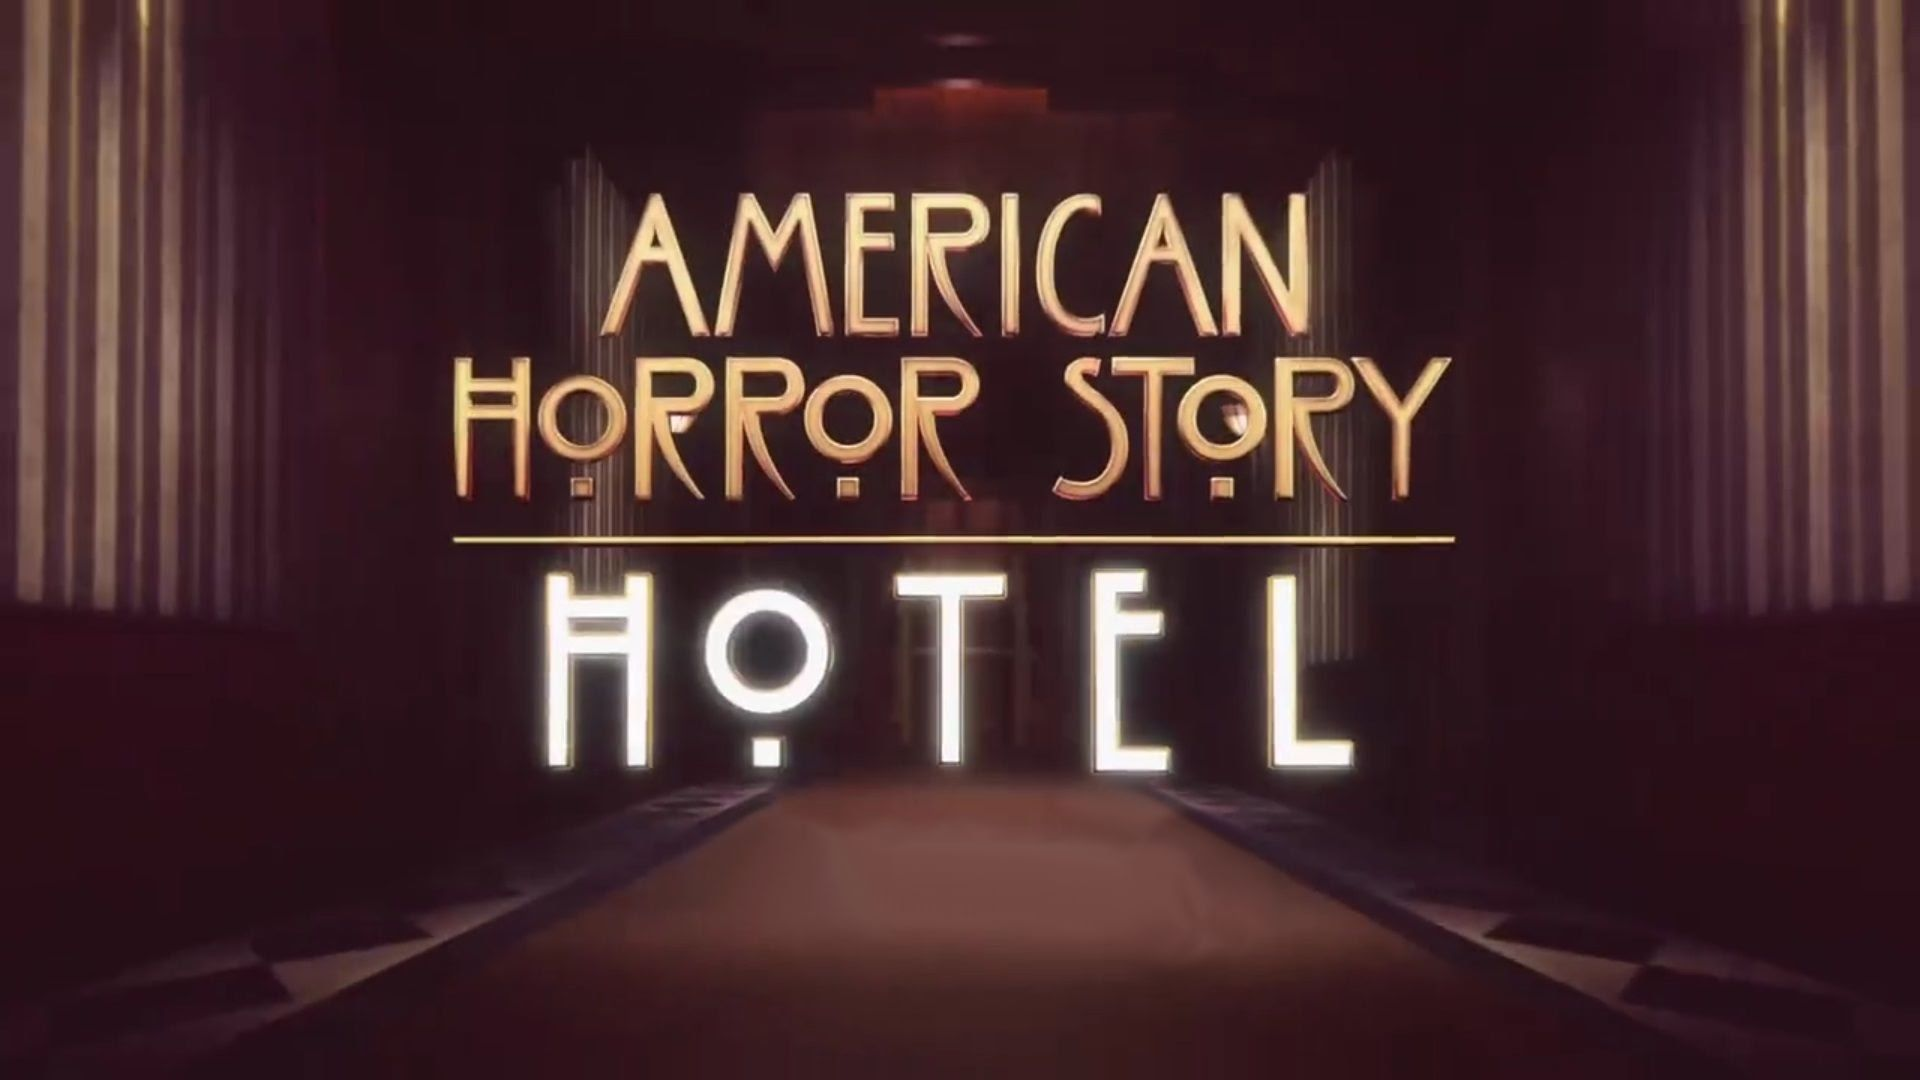 American Horror Story: Hotel Wallpapers High Resolution and